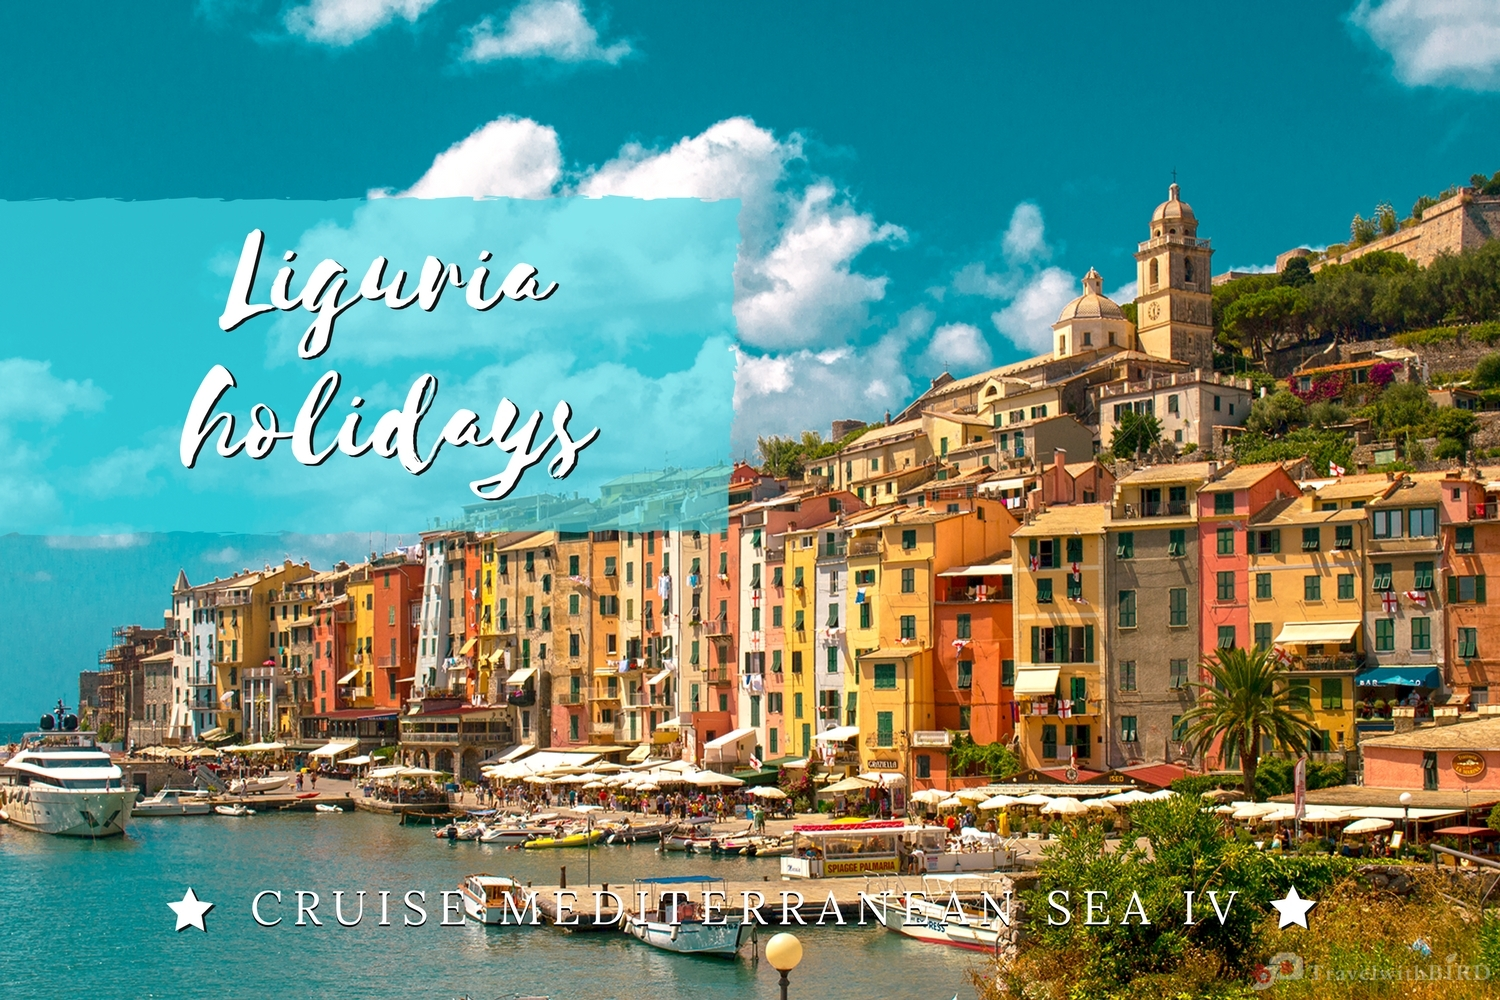 Specialities of Liguria holidays – Cruise mediterranean sea (4)